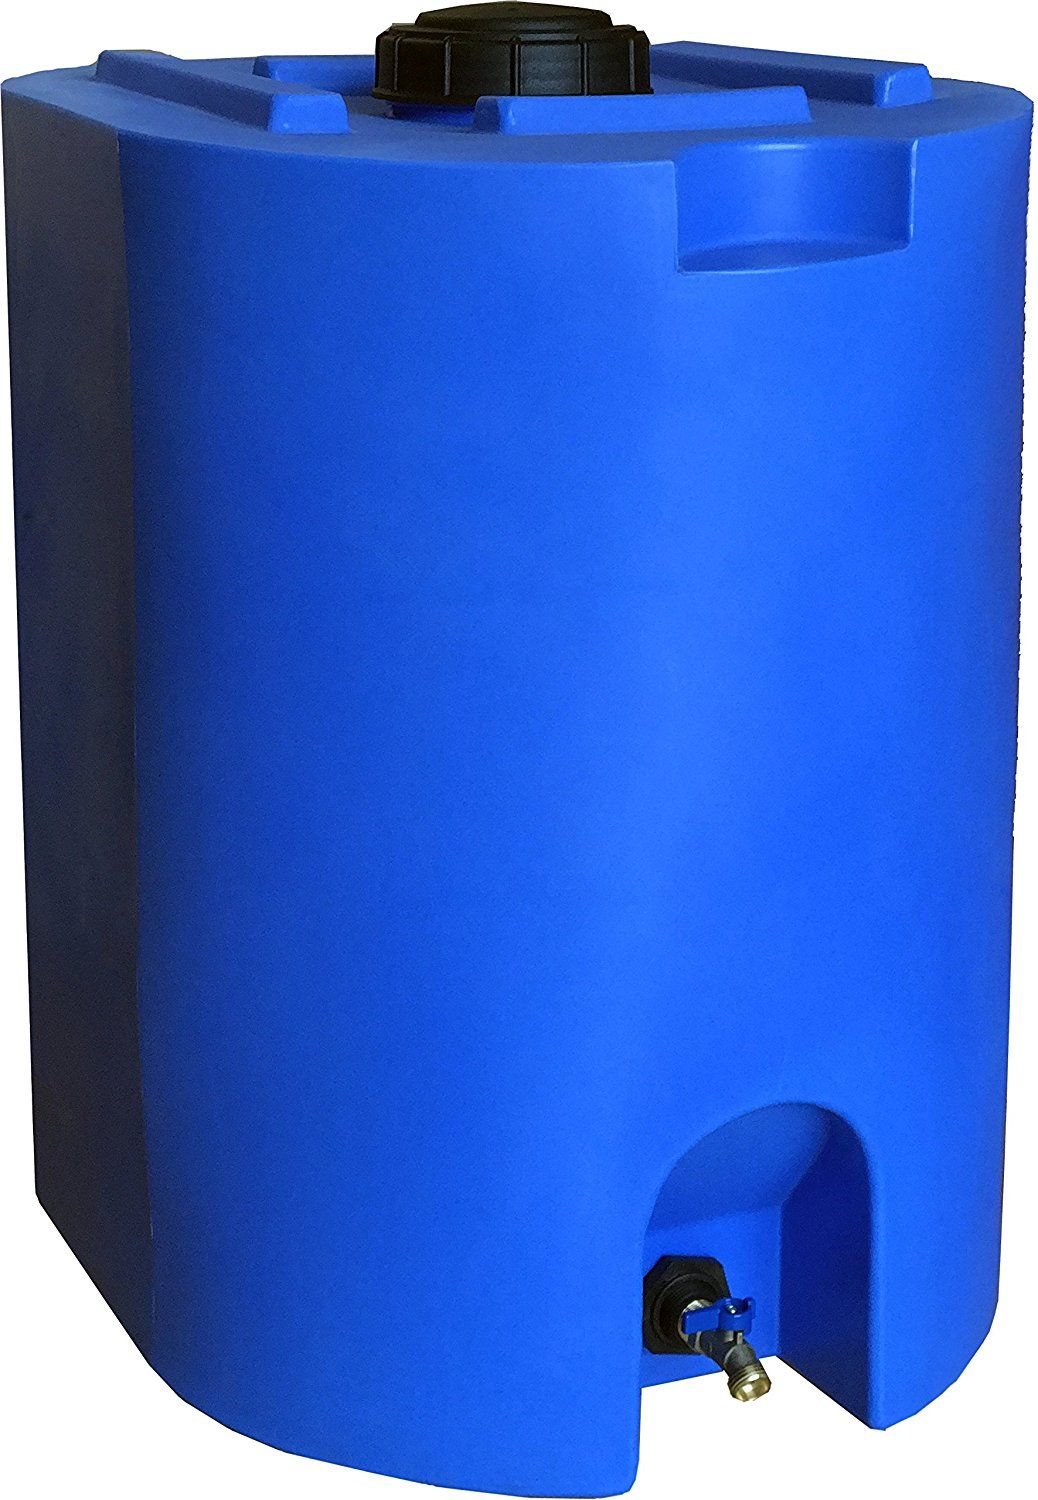 Blue 55 Gallon Water Storage Tank By Waterprepared Emergency Water Barrel Container With Spigot For Emergency Disaster Preparedness Stackable Space Saving Water Storage Tanks Water Storage Water Storage Containers